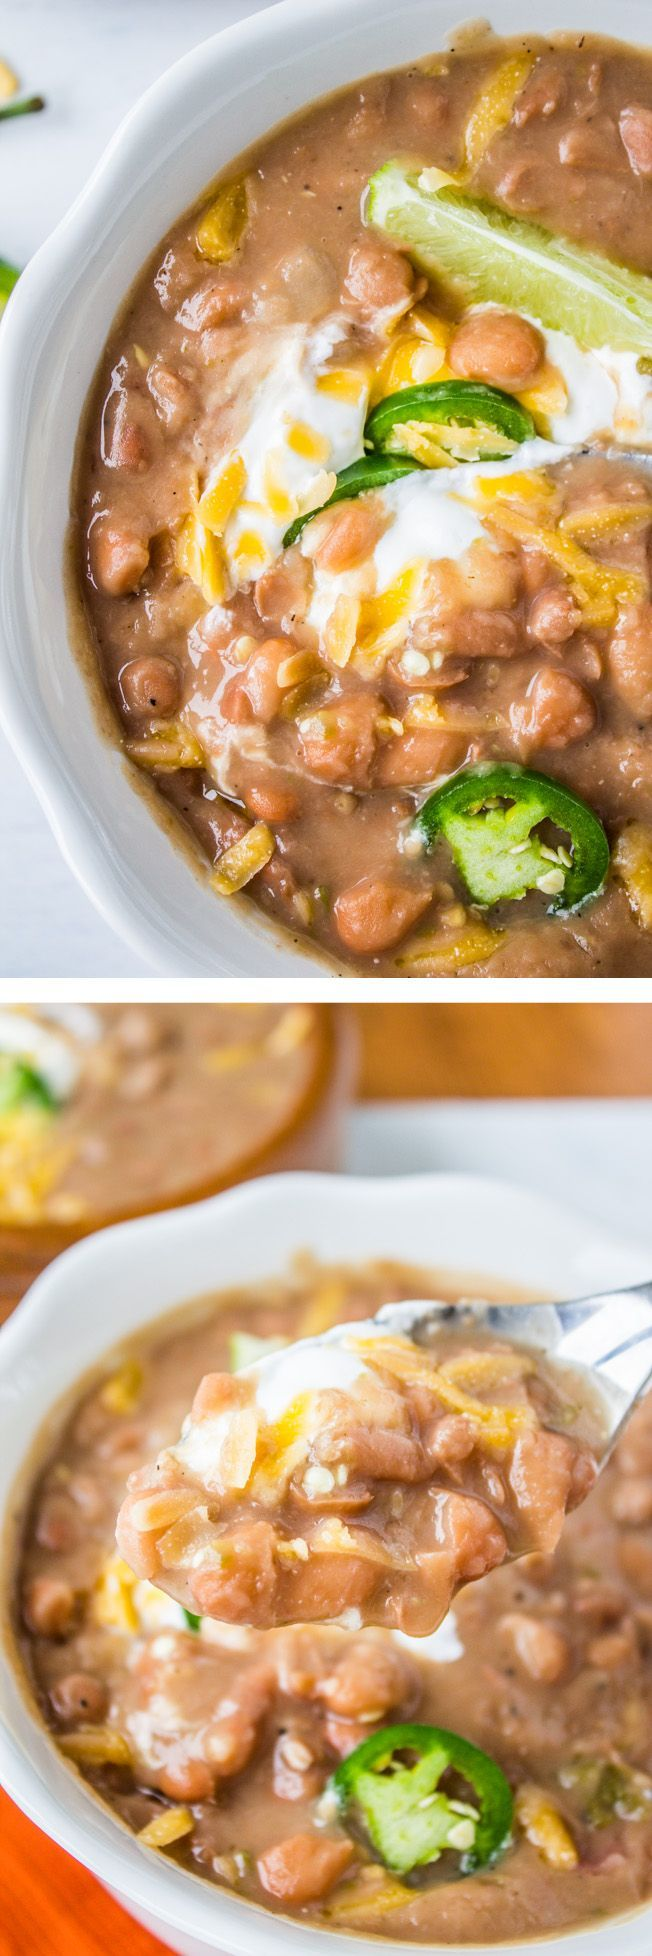 Traditional Tejano Pinto Beans (Slow Cooker) // from The Food Charlatan. These Texas beans are cooked with ham bone and jalapeno for a Mexican twist! Perfect side dish and so easy.